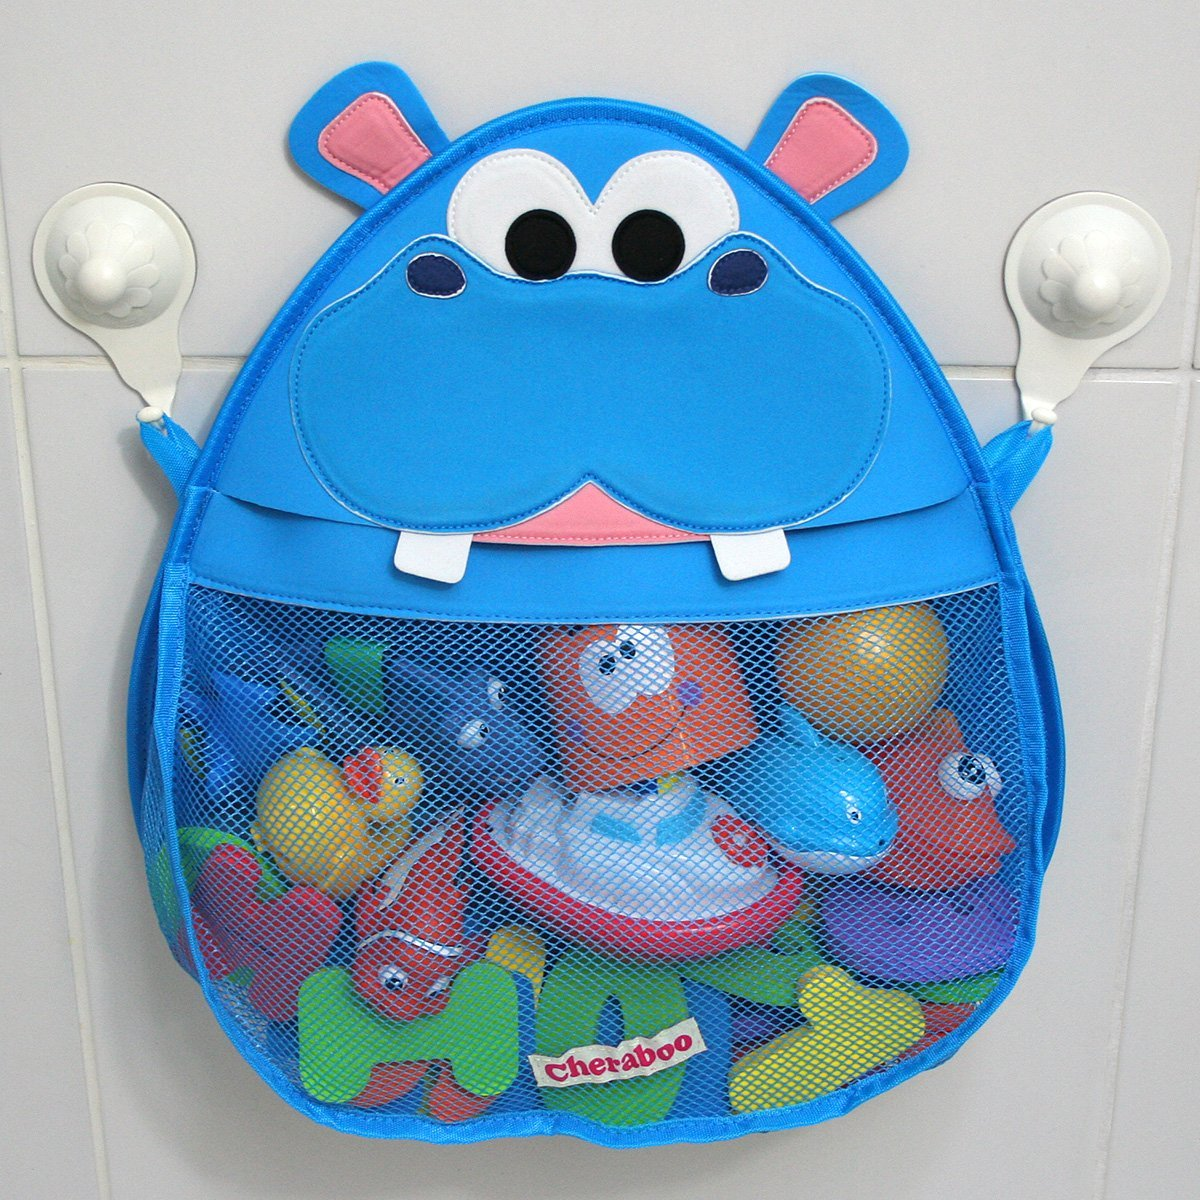 Hurley Hippo Bath Toy Organizer By Cheraboo | Heartbeats~ Soul Stains